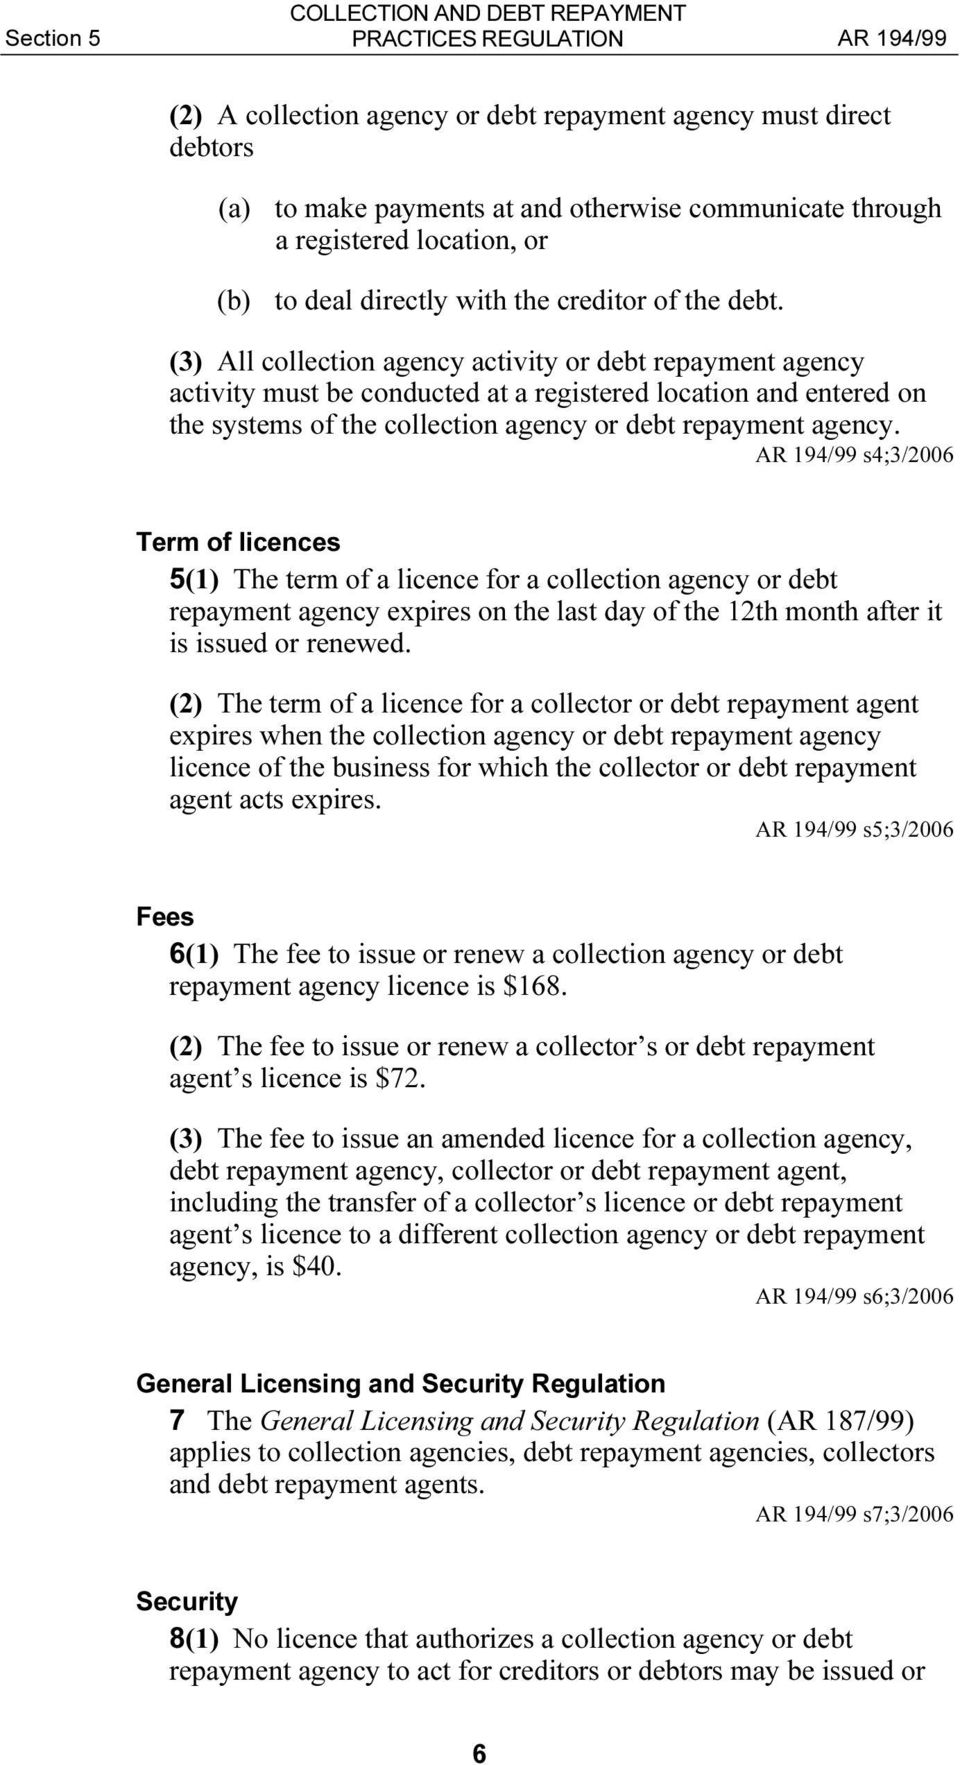 (3) All collection agency activity or debt repayment agency activity must be conducted at a registered location and entered on the systems of the collection agency or debt repayment agency.